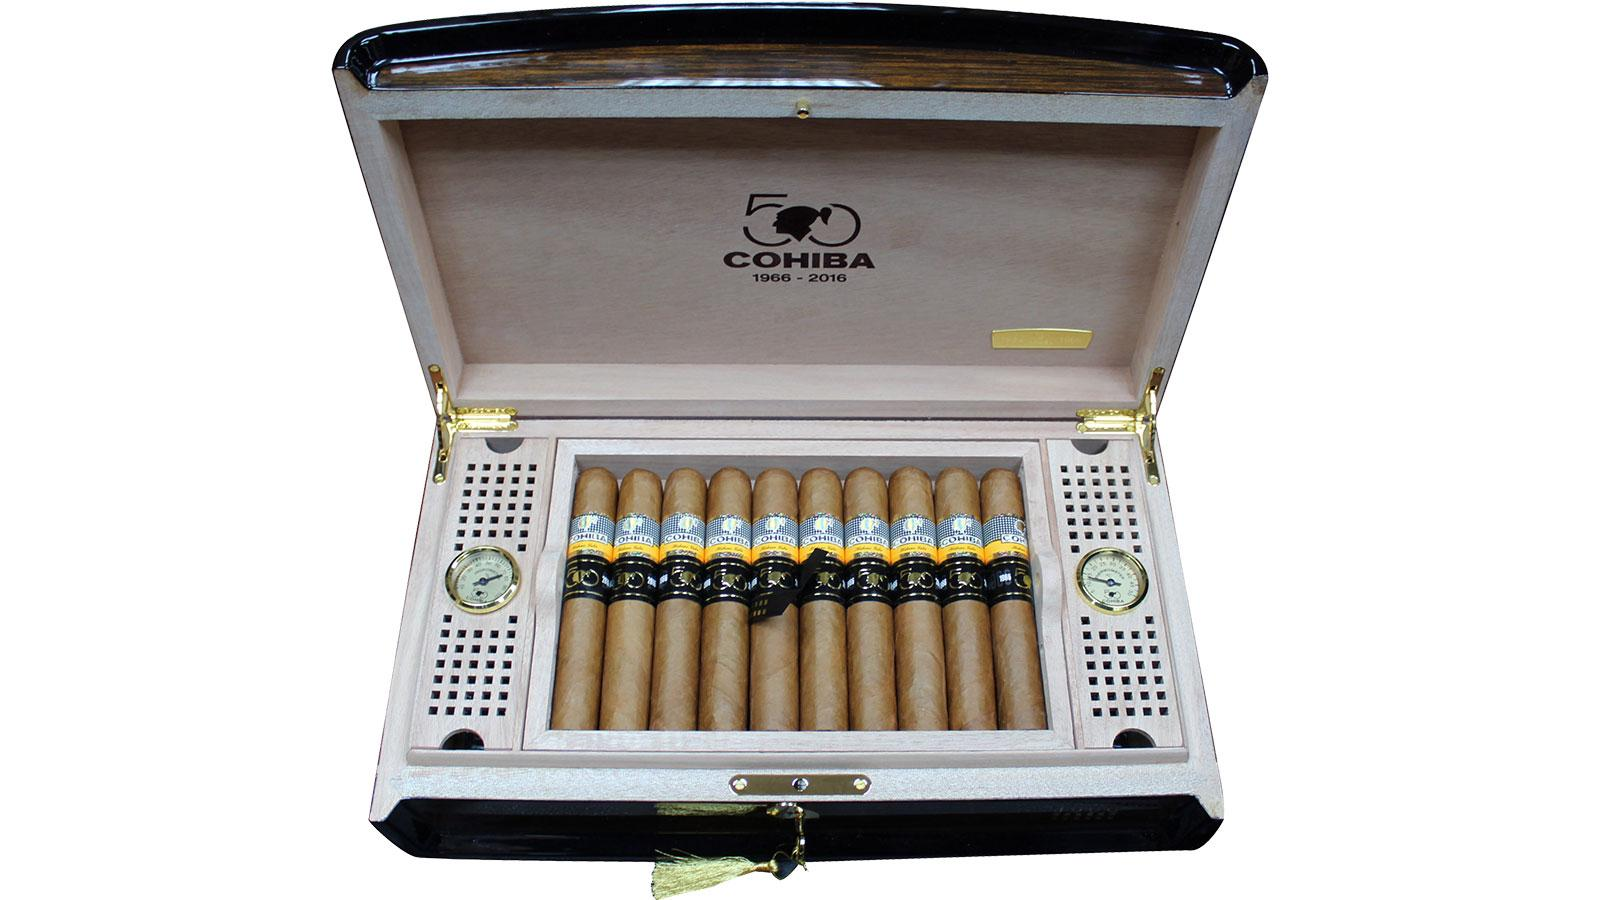 The Cohiba Majestuoso 1966 Humidors are two of 1,966 pieces made to celebrate the 50th anniversary of the brand.